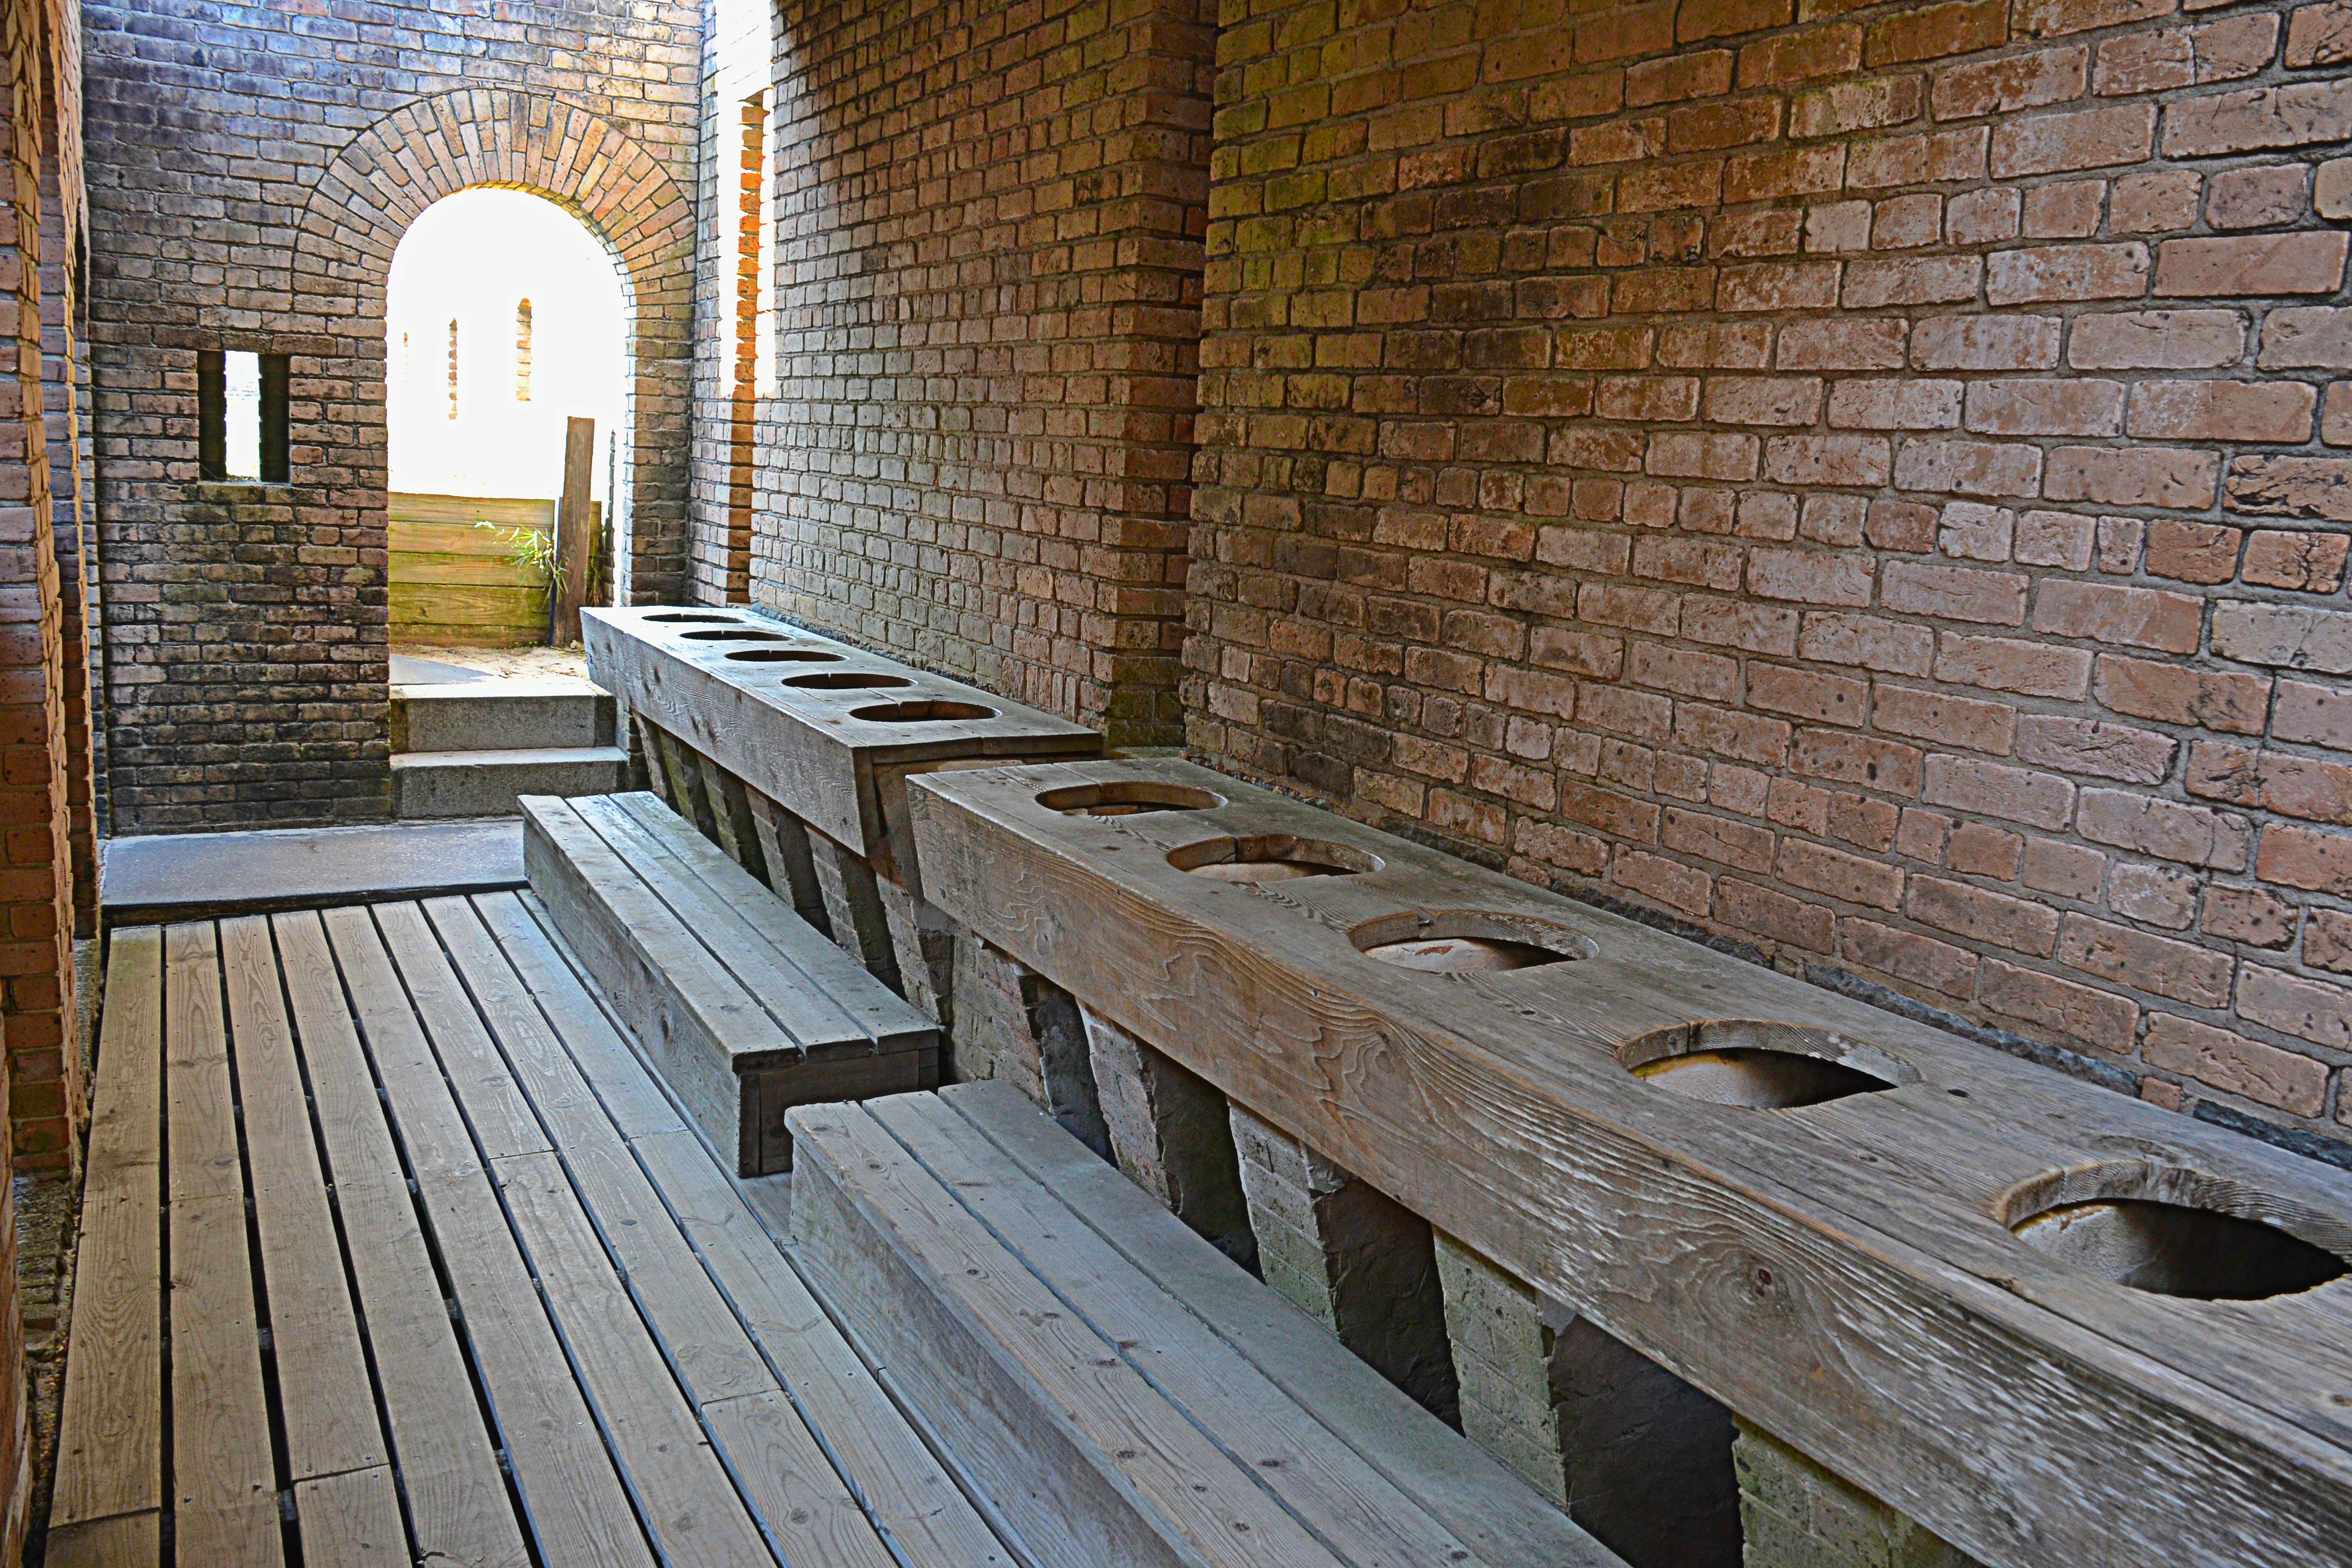 fort morgan Get directions, maps, and traffic for fort morgan, al check flight prices and hotel availability for your visit.